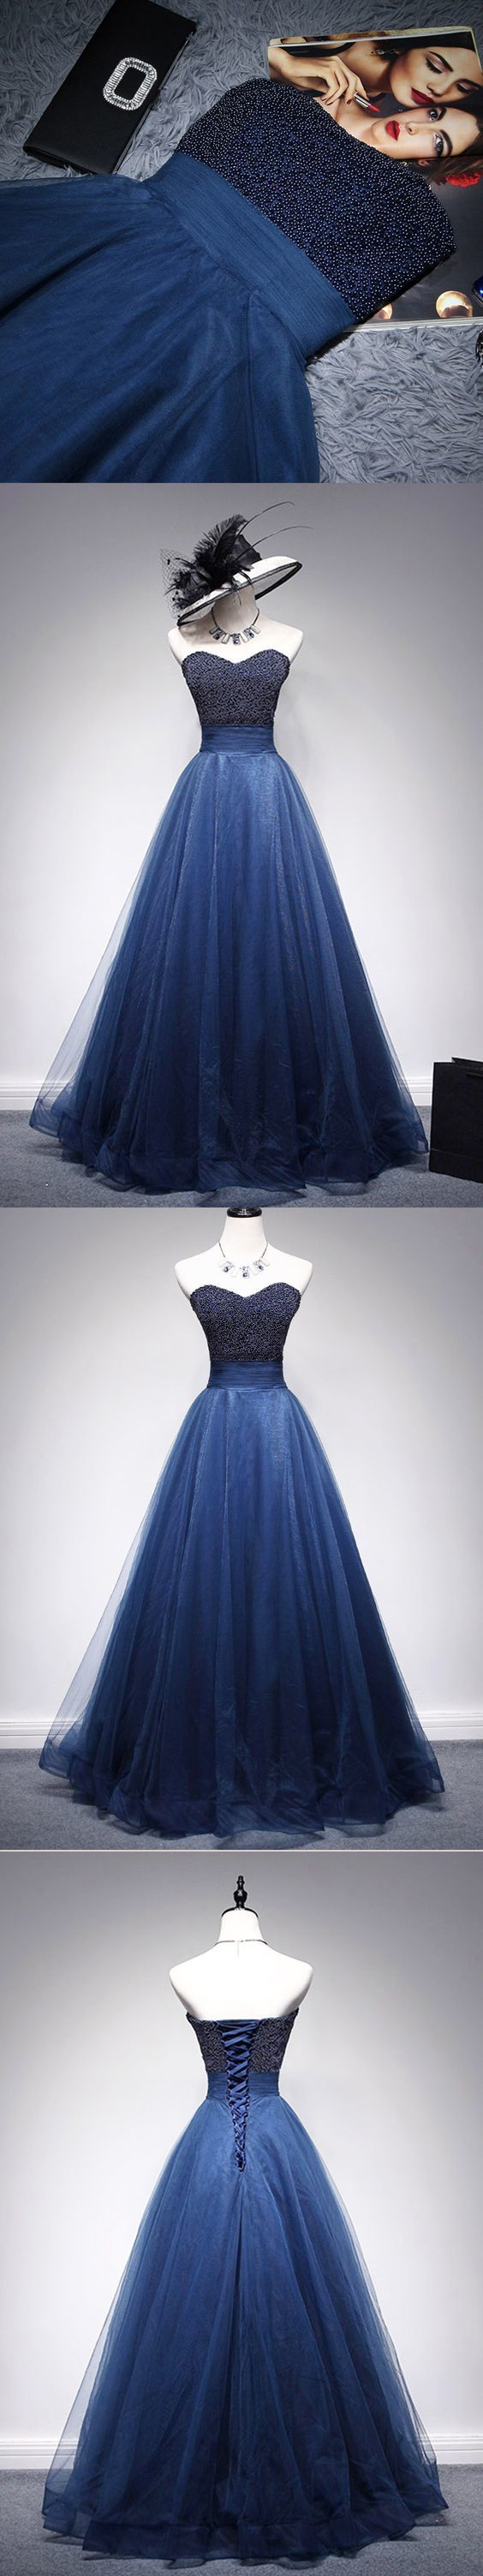 Beading Prom Dresses A Line Sweetheart Long Prom Dress Sexy Evening Dress